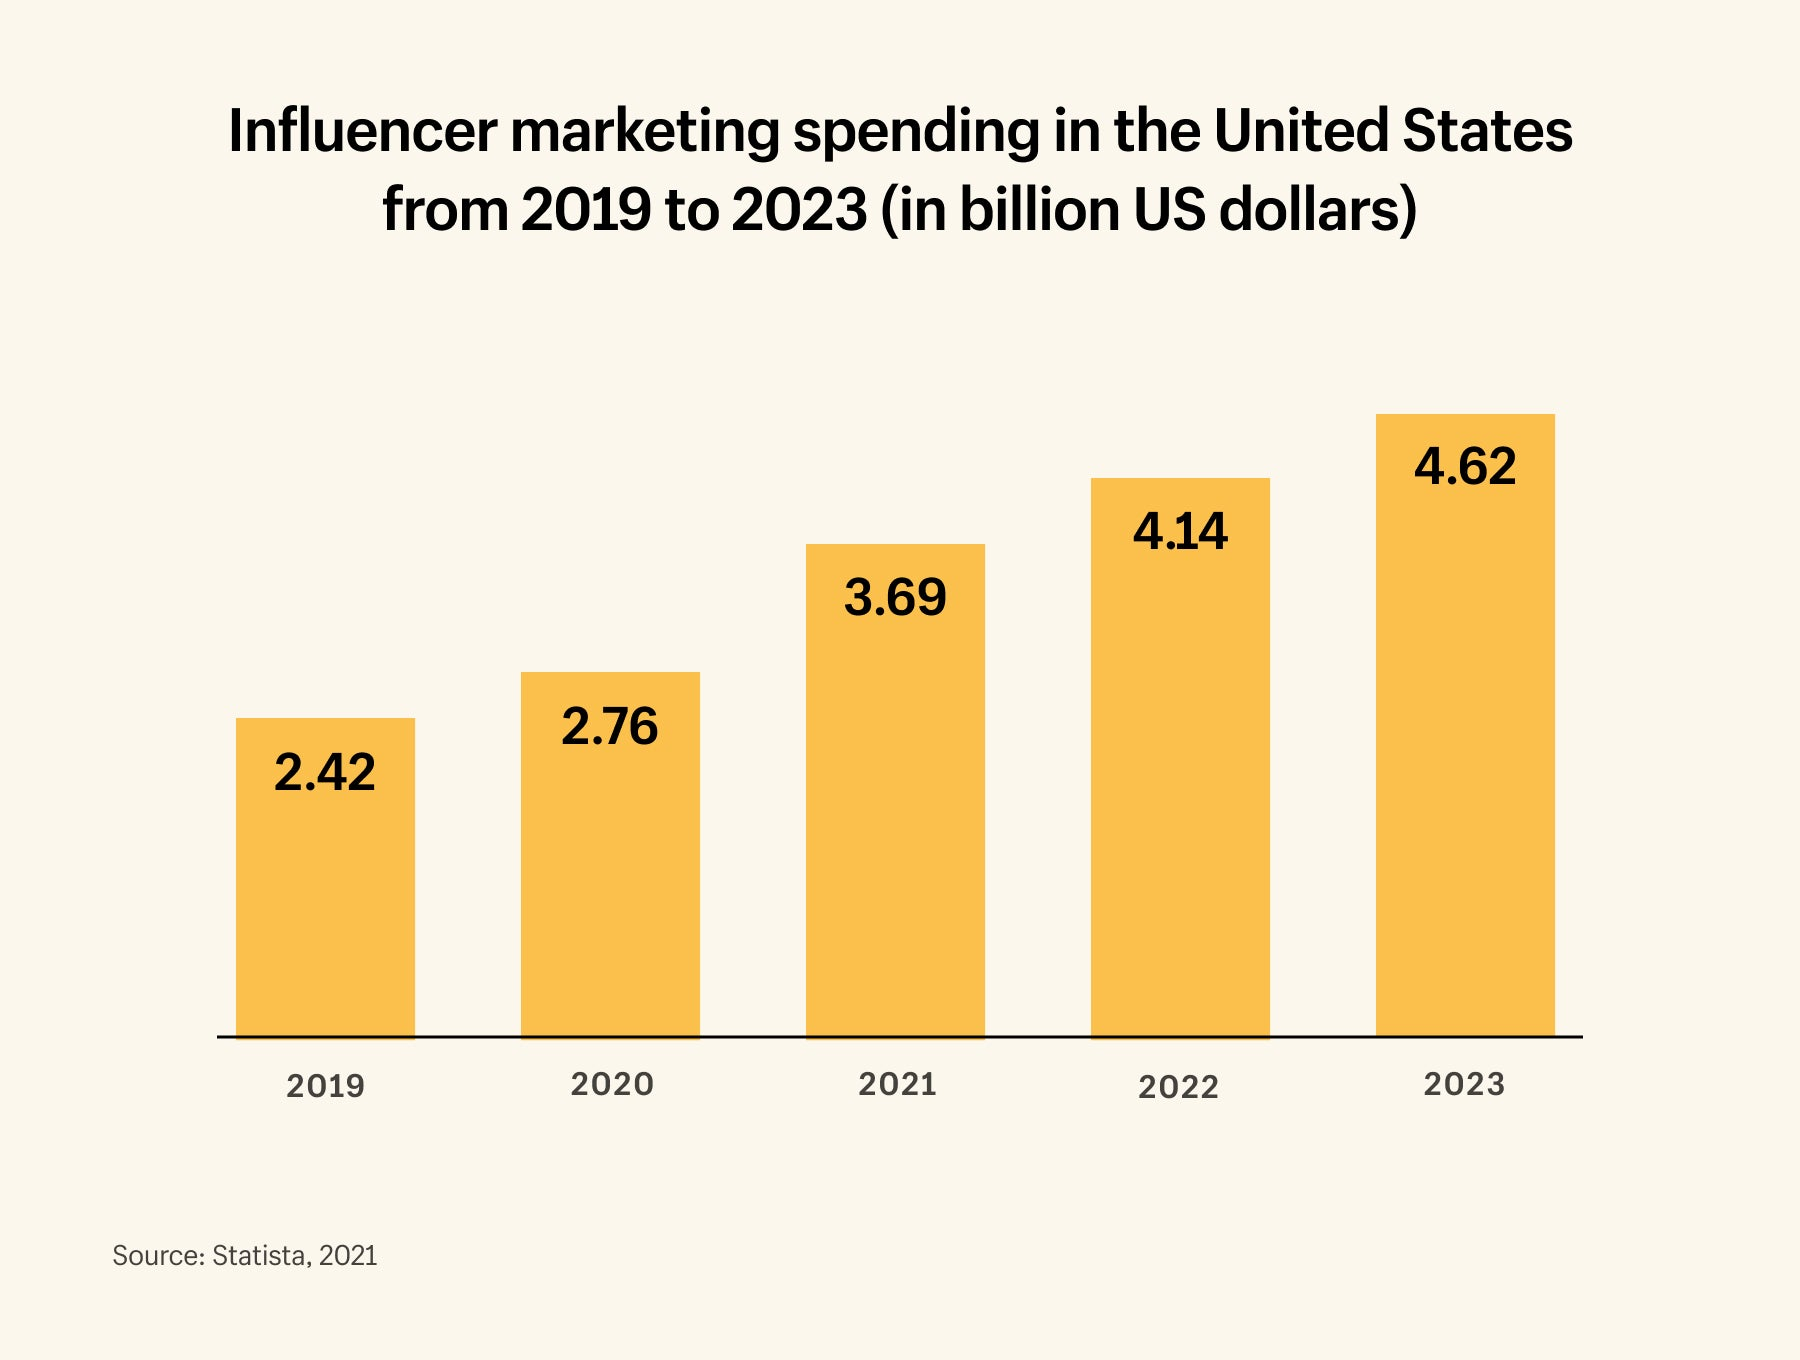 By 2023 brands will be spending $4.62 billion per year on influencer marketing